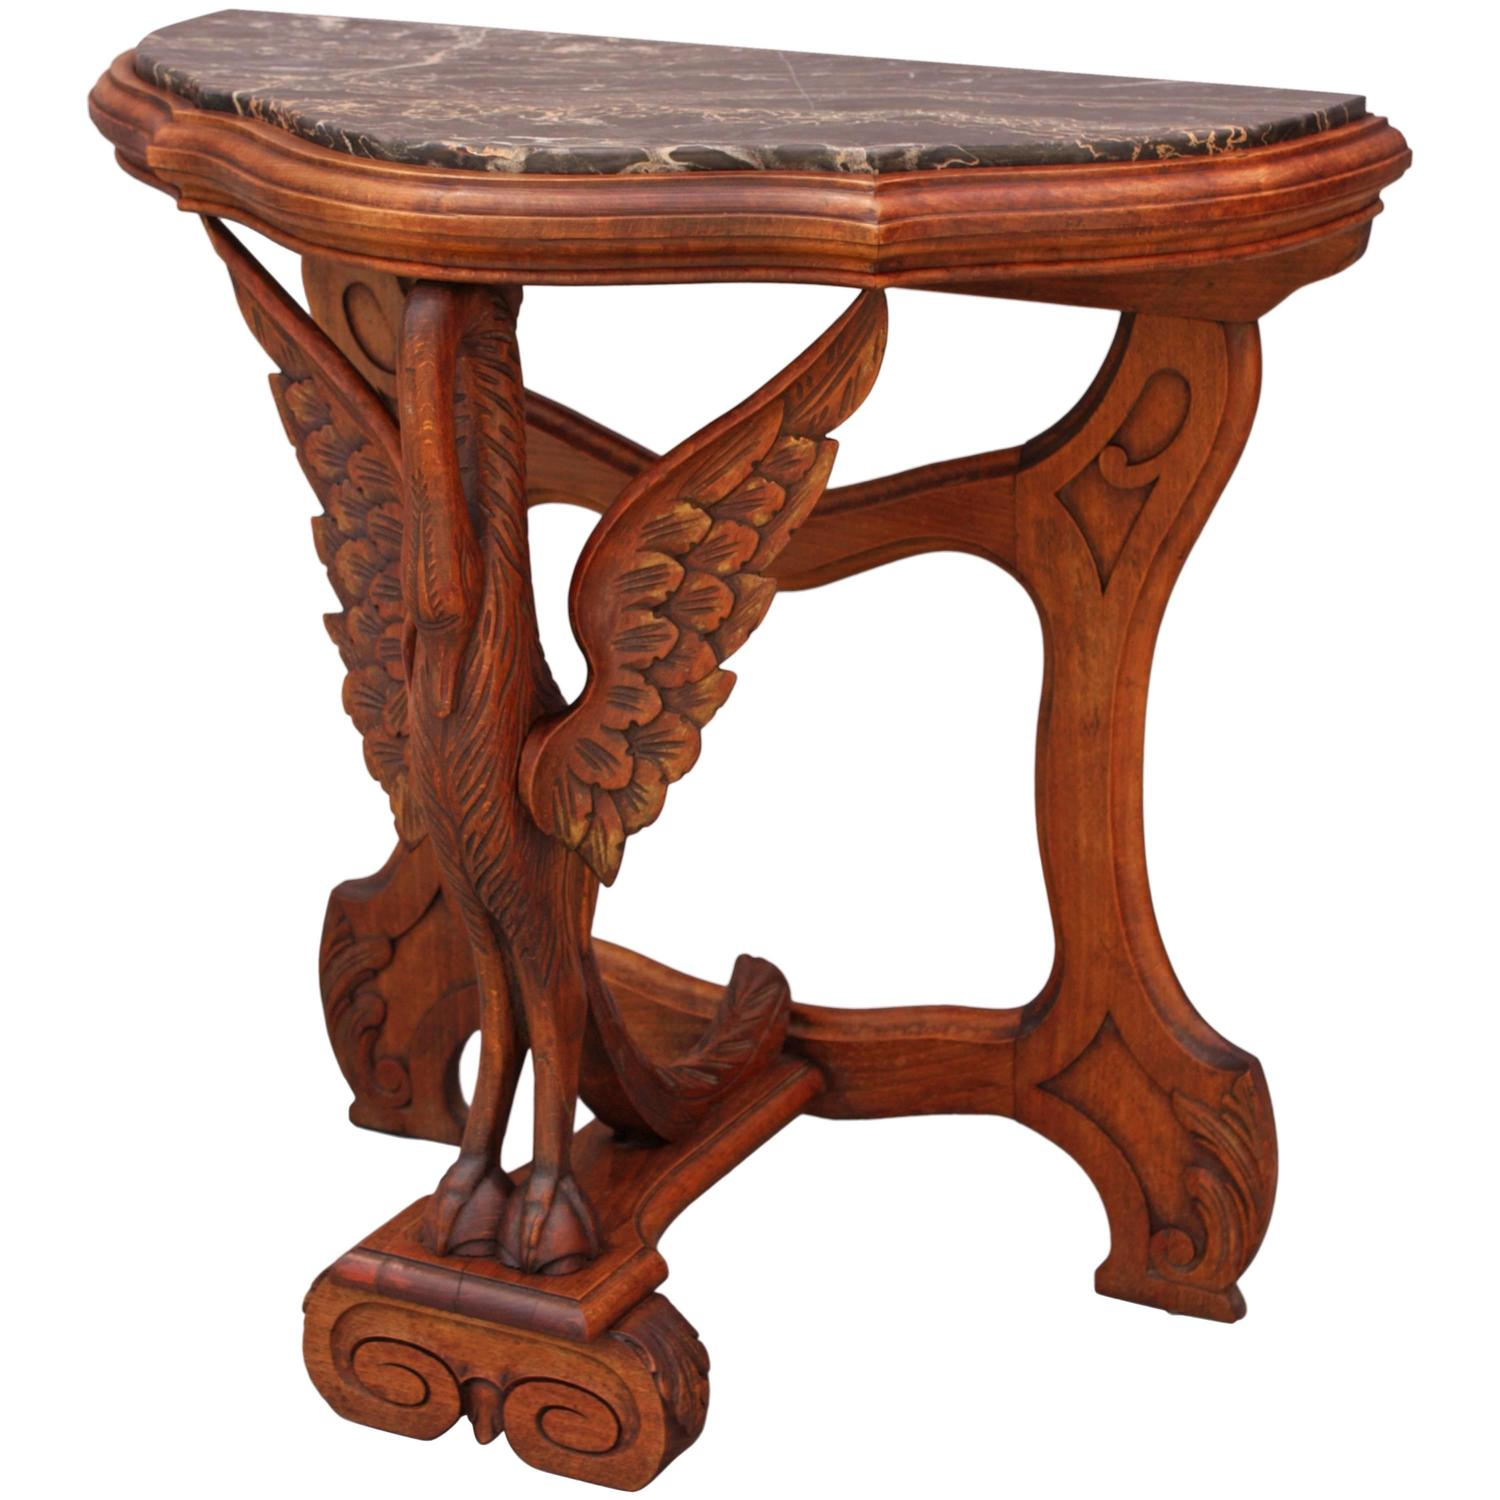 Antique Marble Side Table Reading: Antique Hand-Carved Marble-Top Table With Swan Motif For